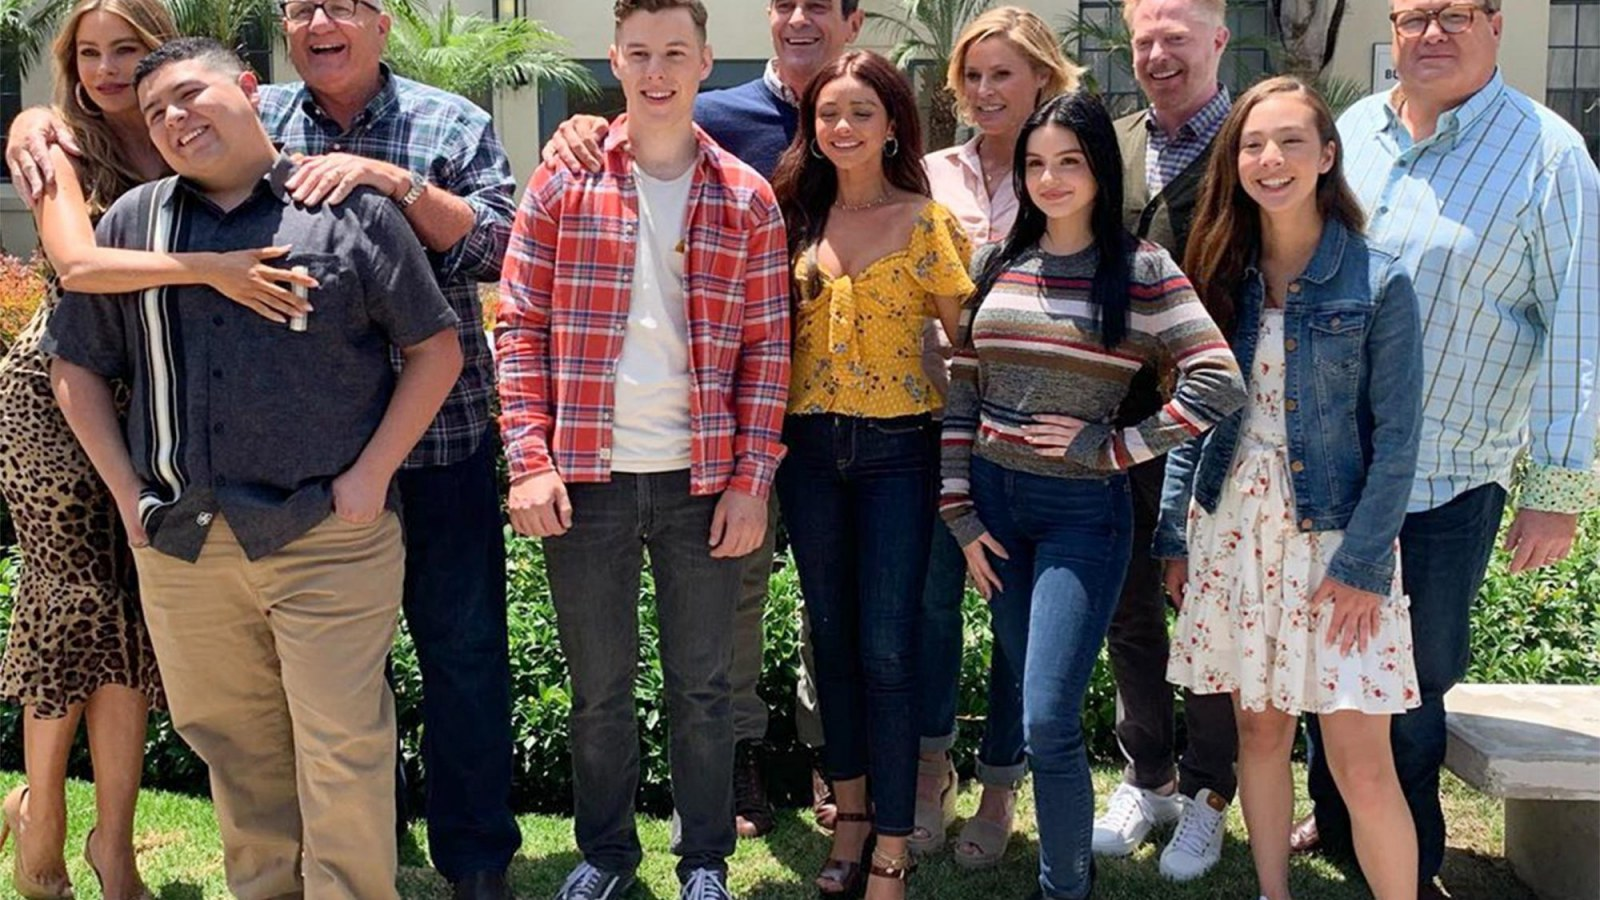 Modern Family Streaming When Will The Final Season And The Rest Of The Show Be Available To Watch Online